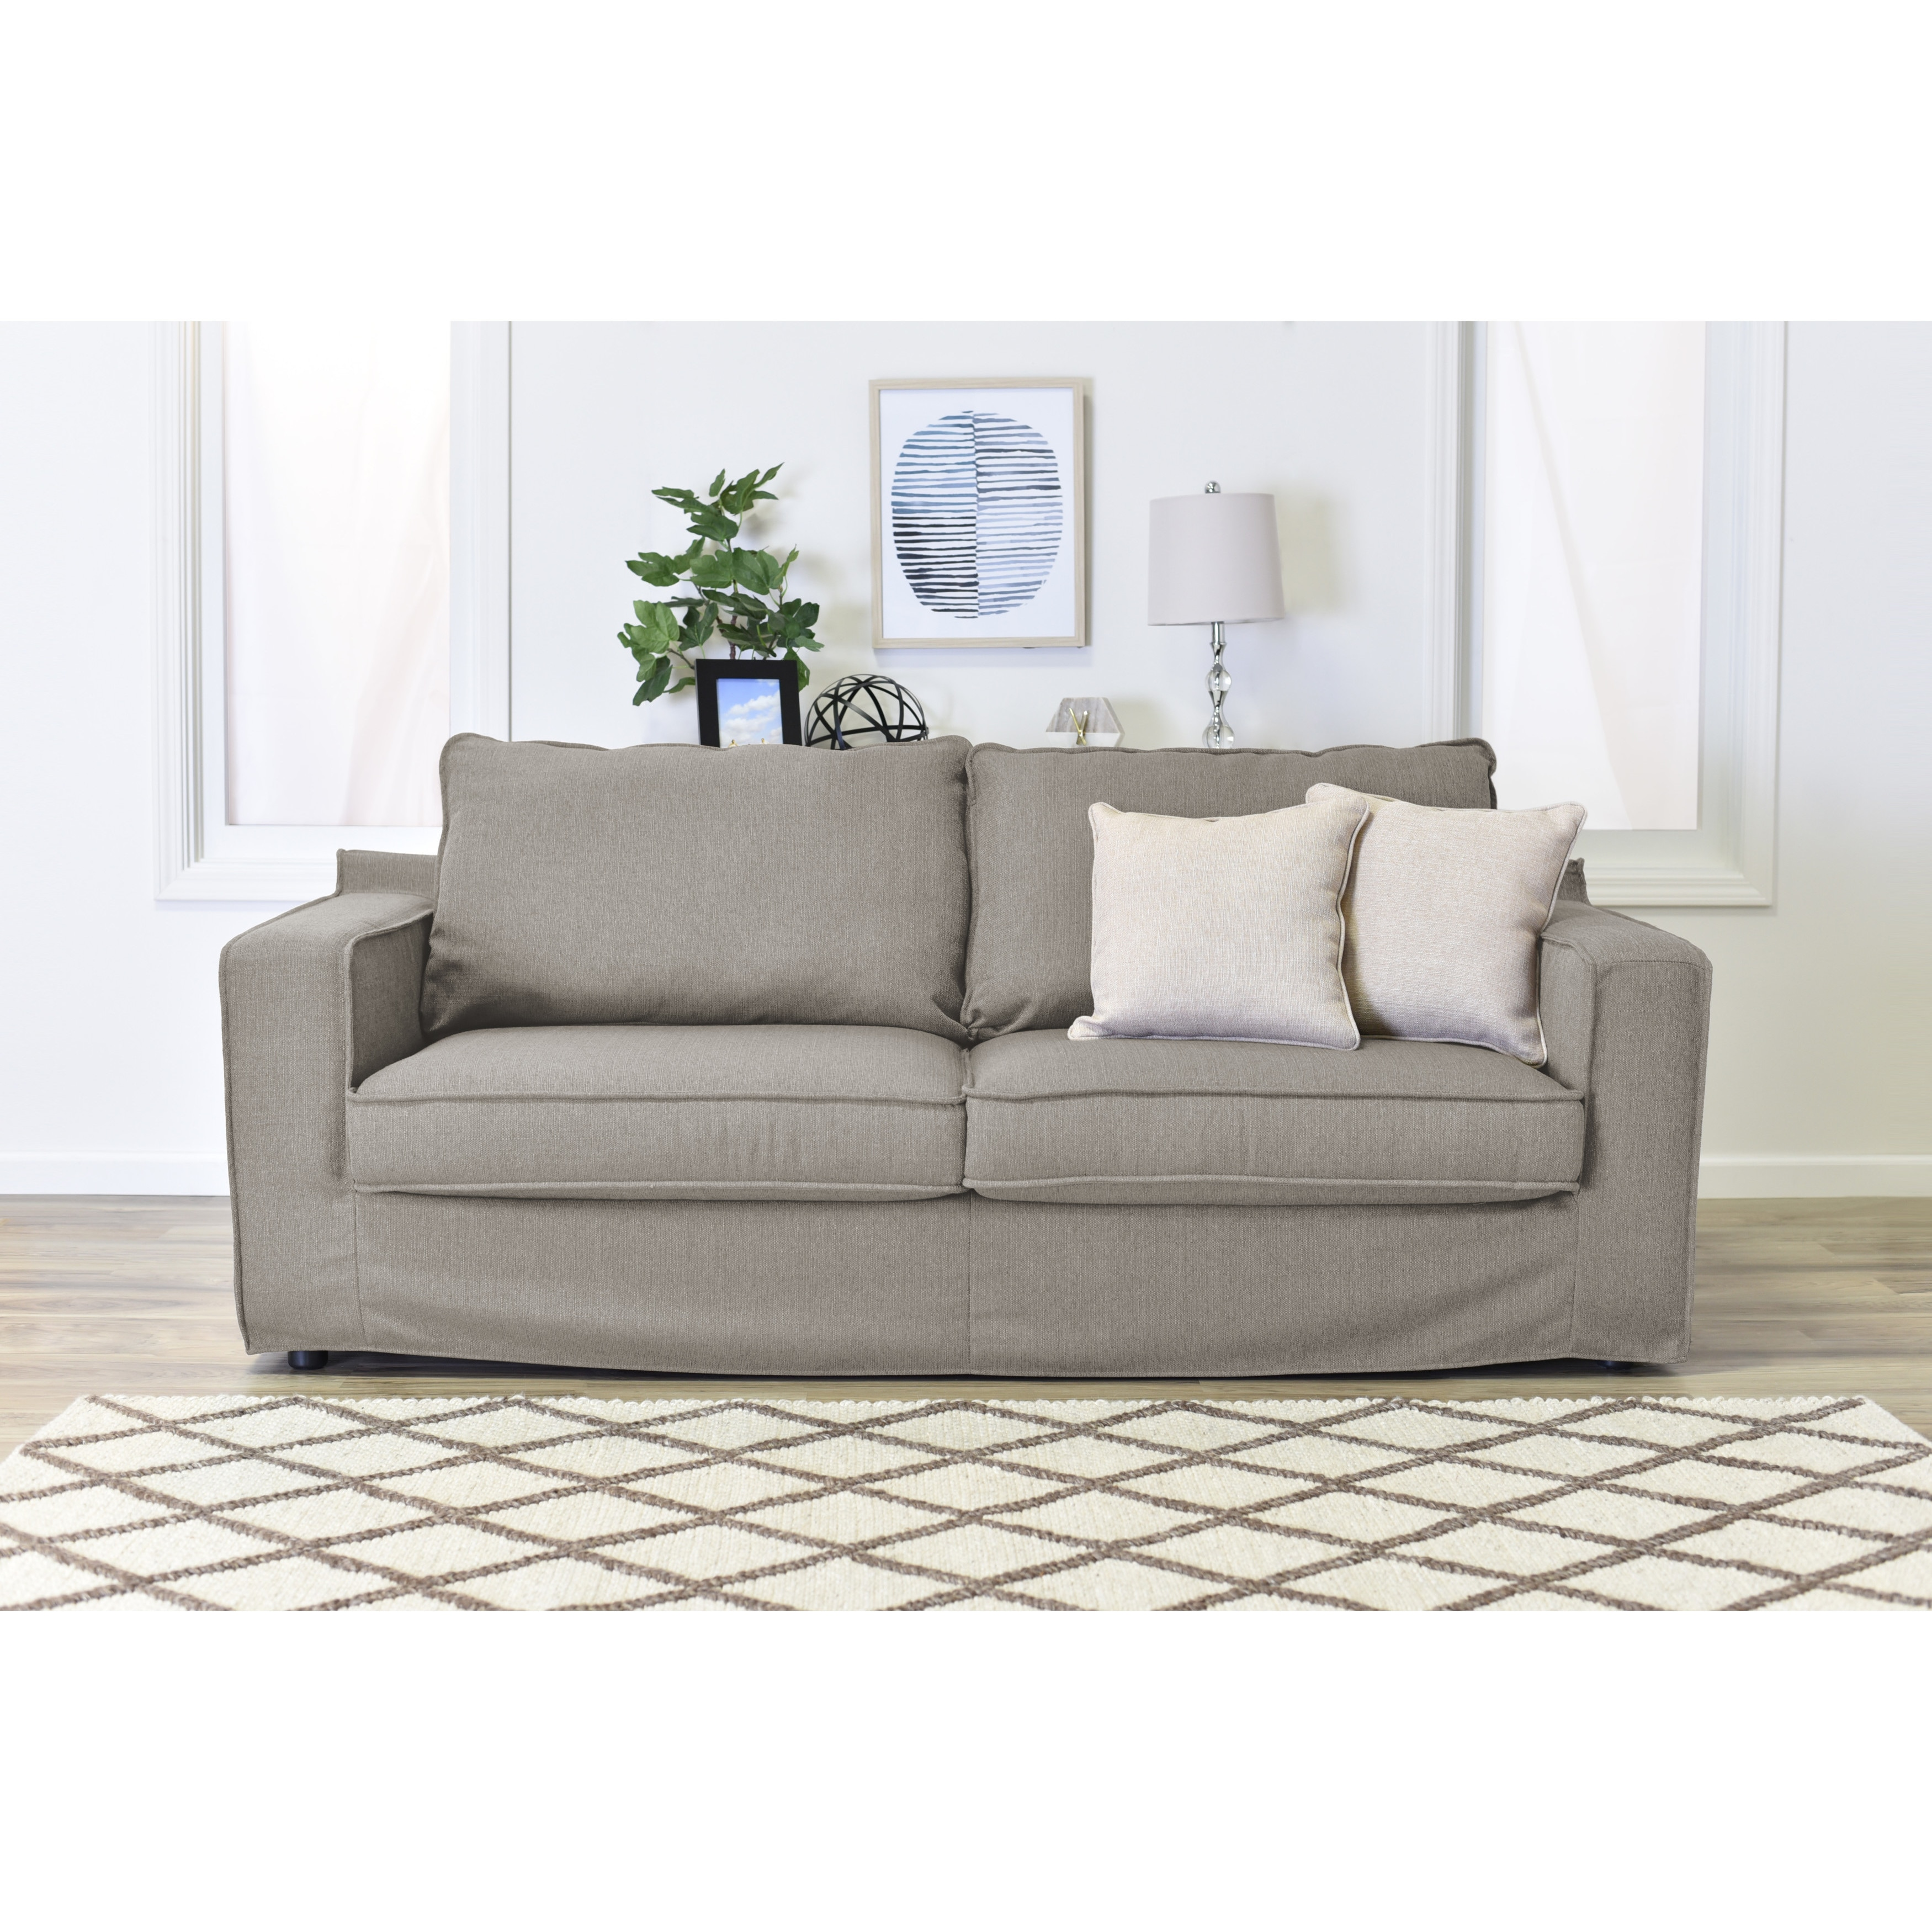 Shop Serta Colton Fabric 85-inch Sofa with Slipcover - Free Shipping ...